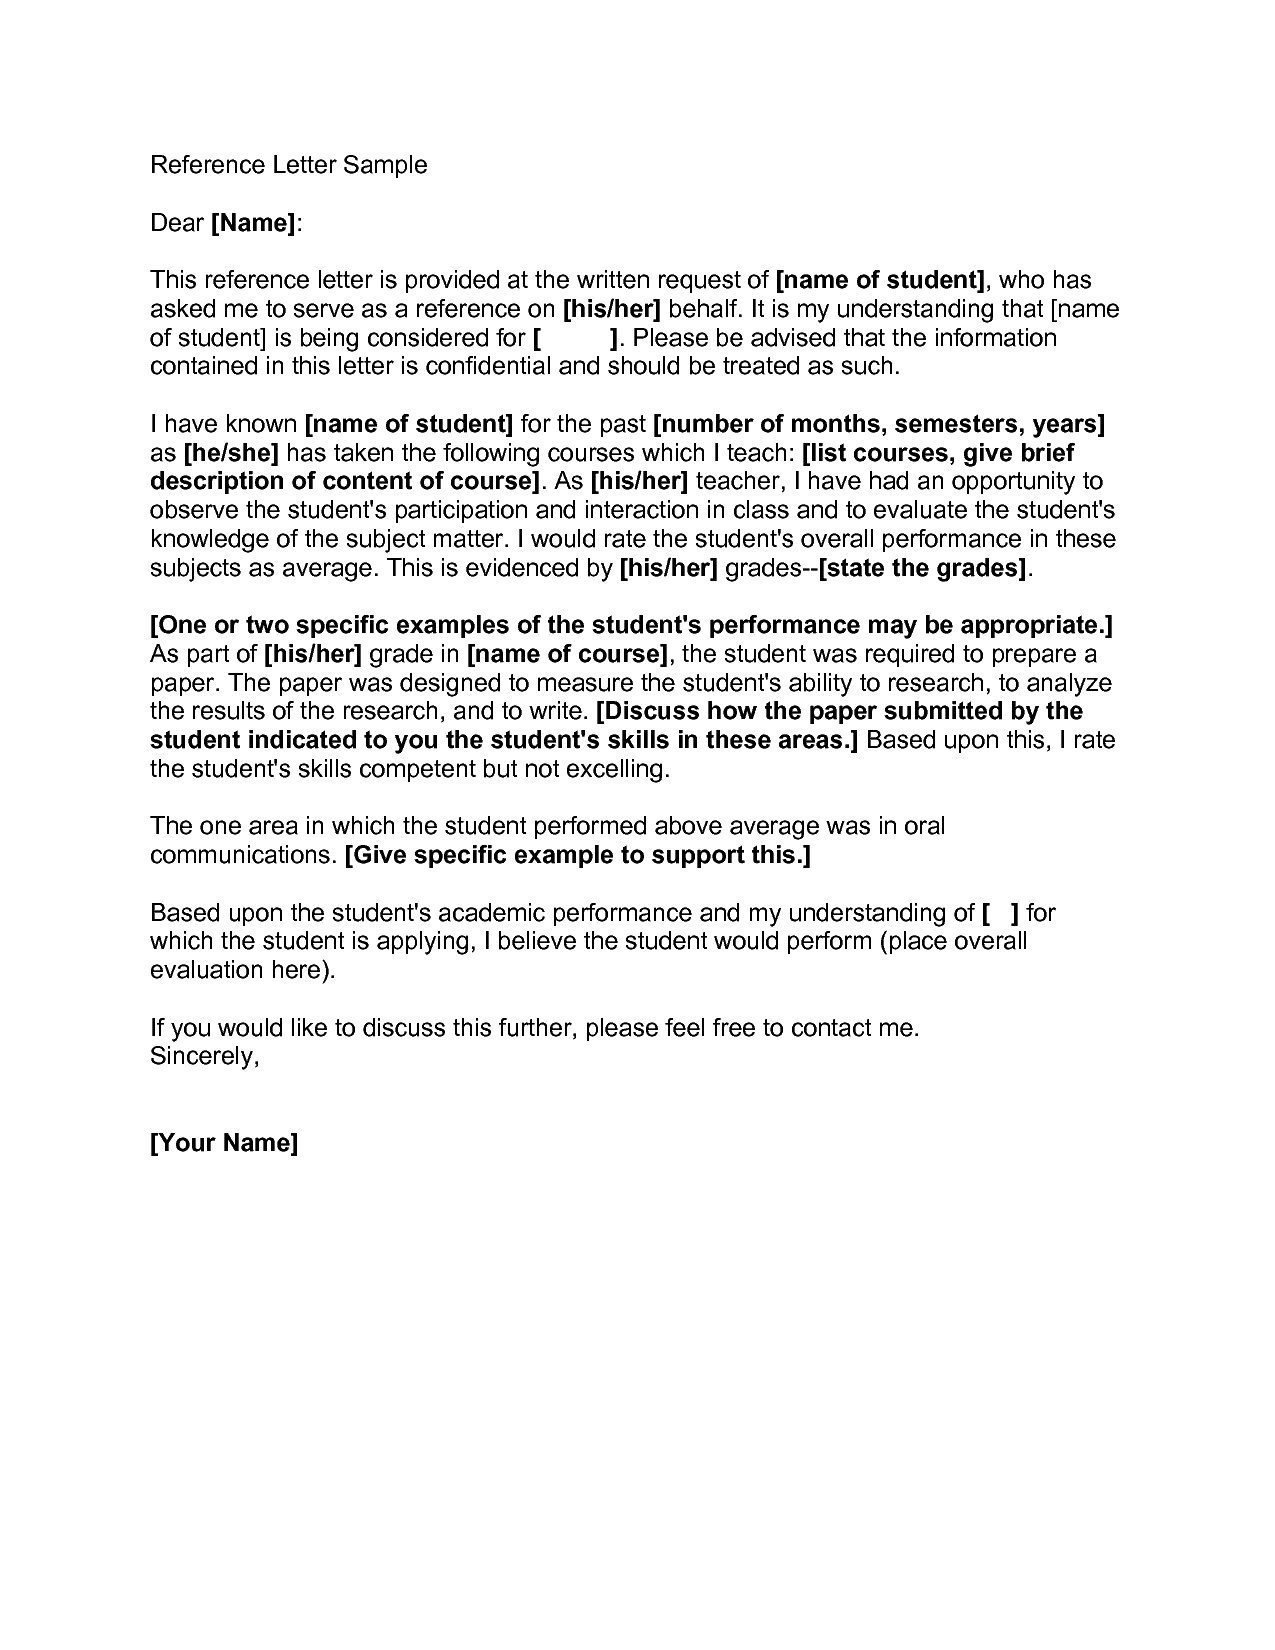 Reference Letter SamplesExamples of Reference Letters Request letter